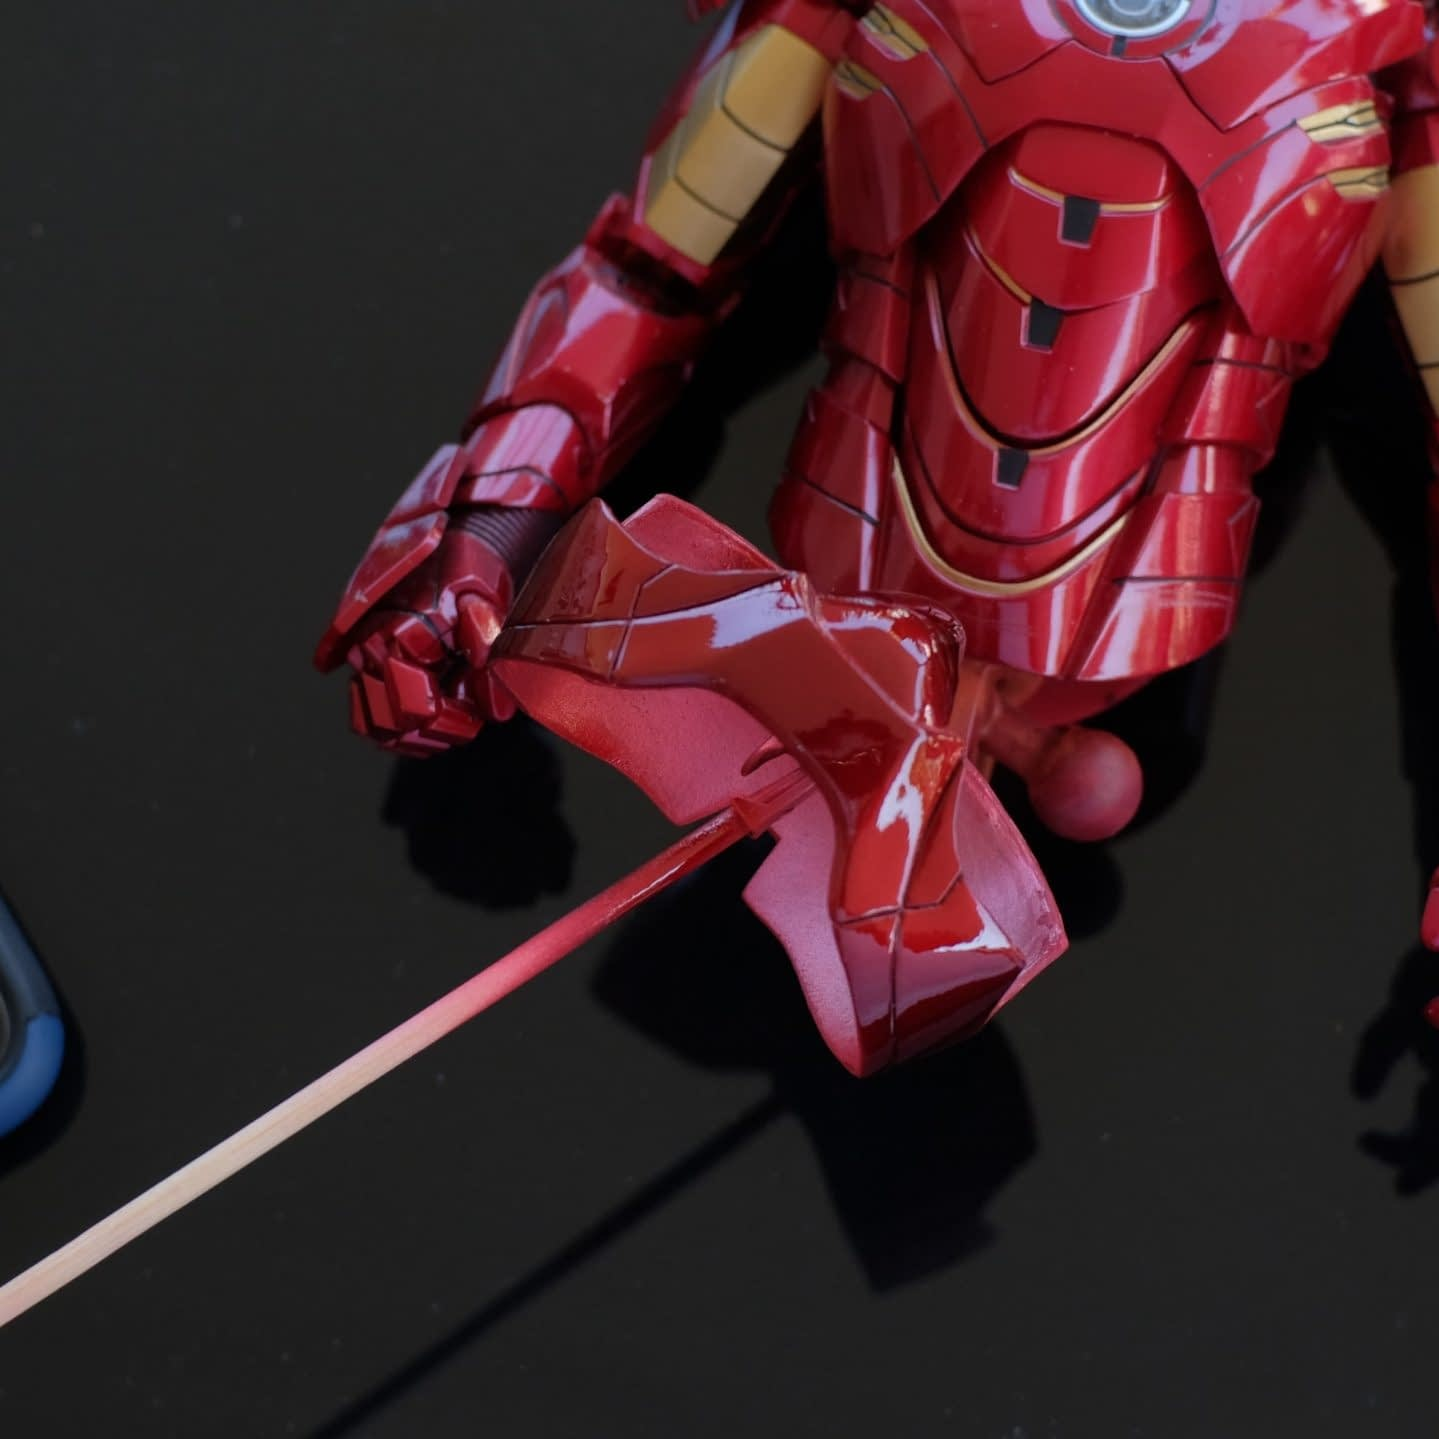 How to fix HT's Iron Man pink panty issue 34